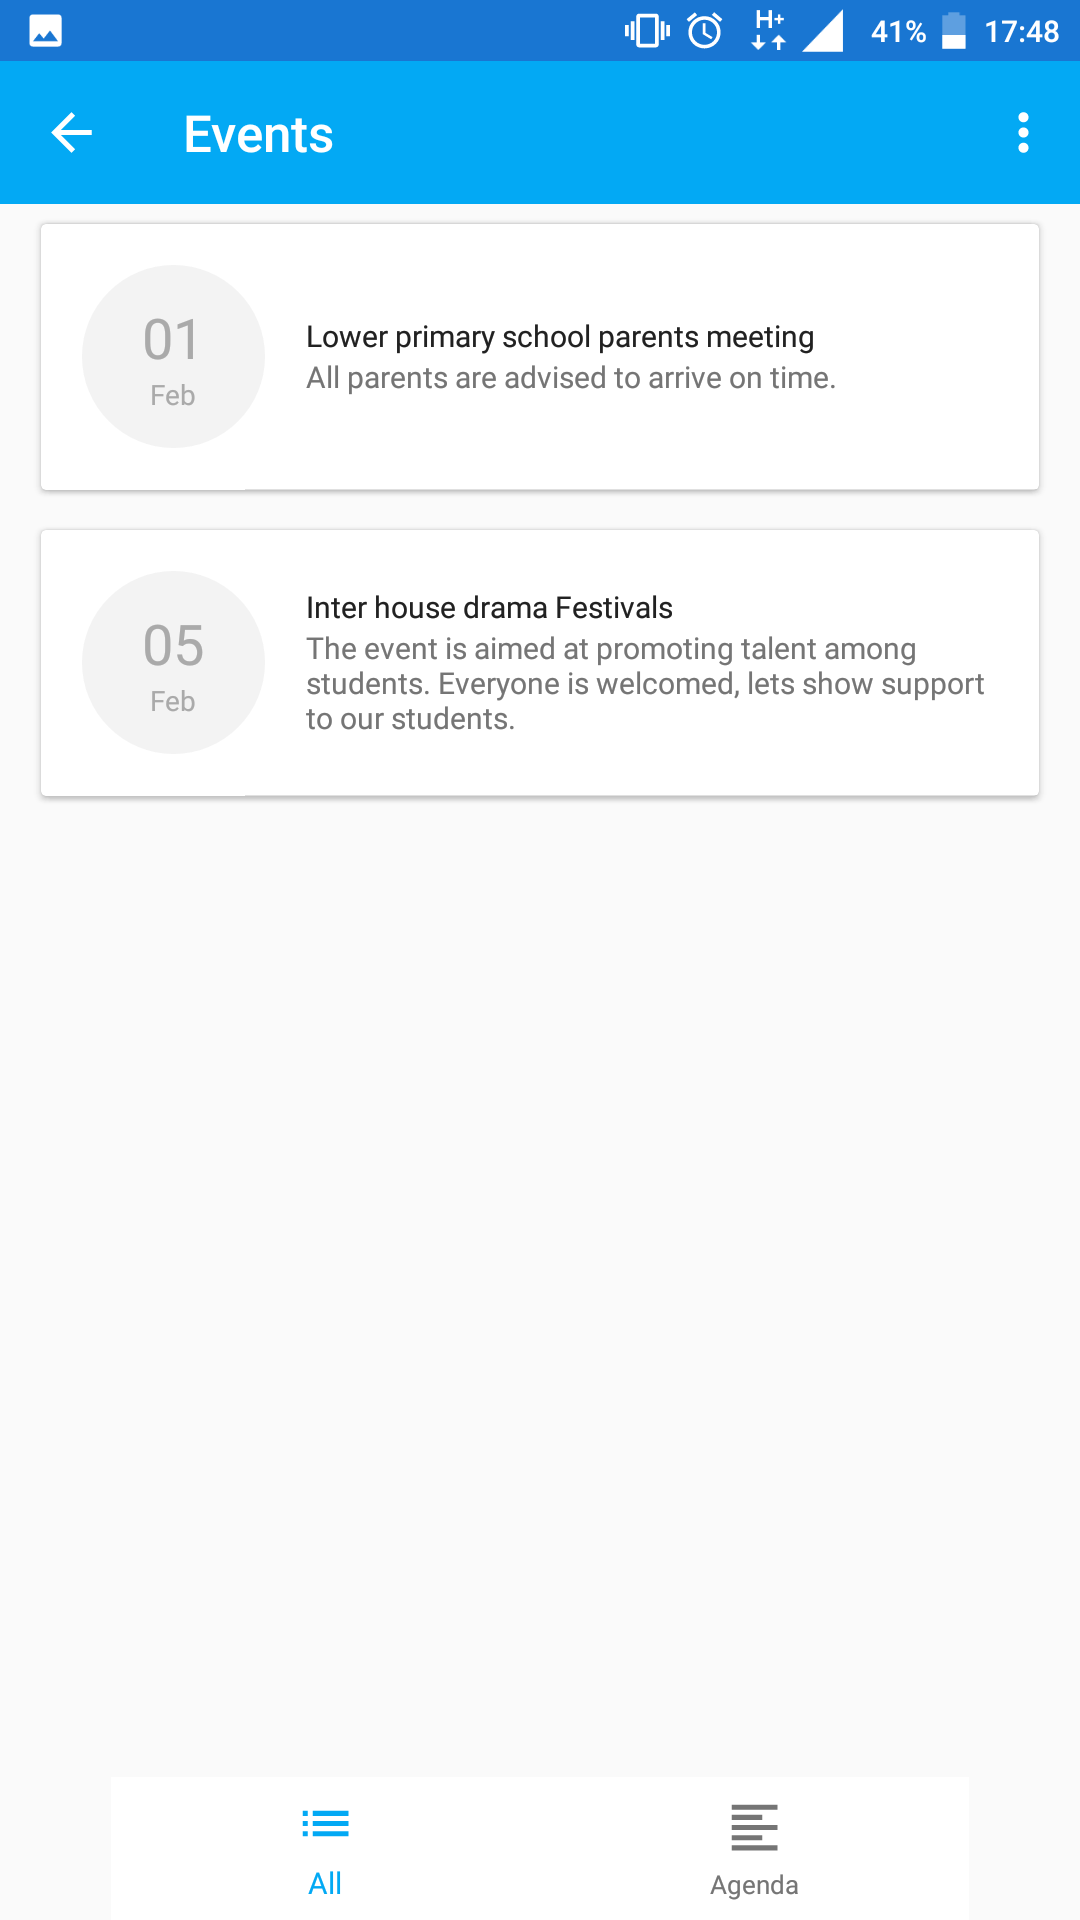 Bunifu Schools Mobile App - Events Listing